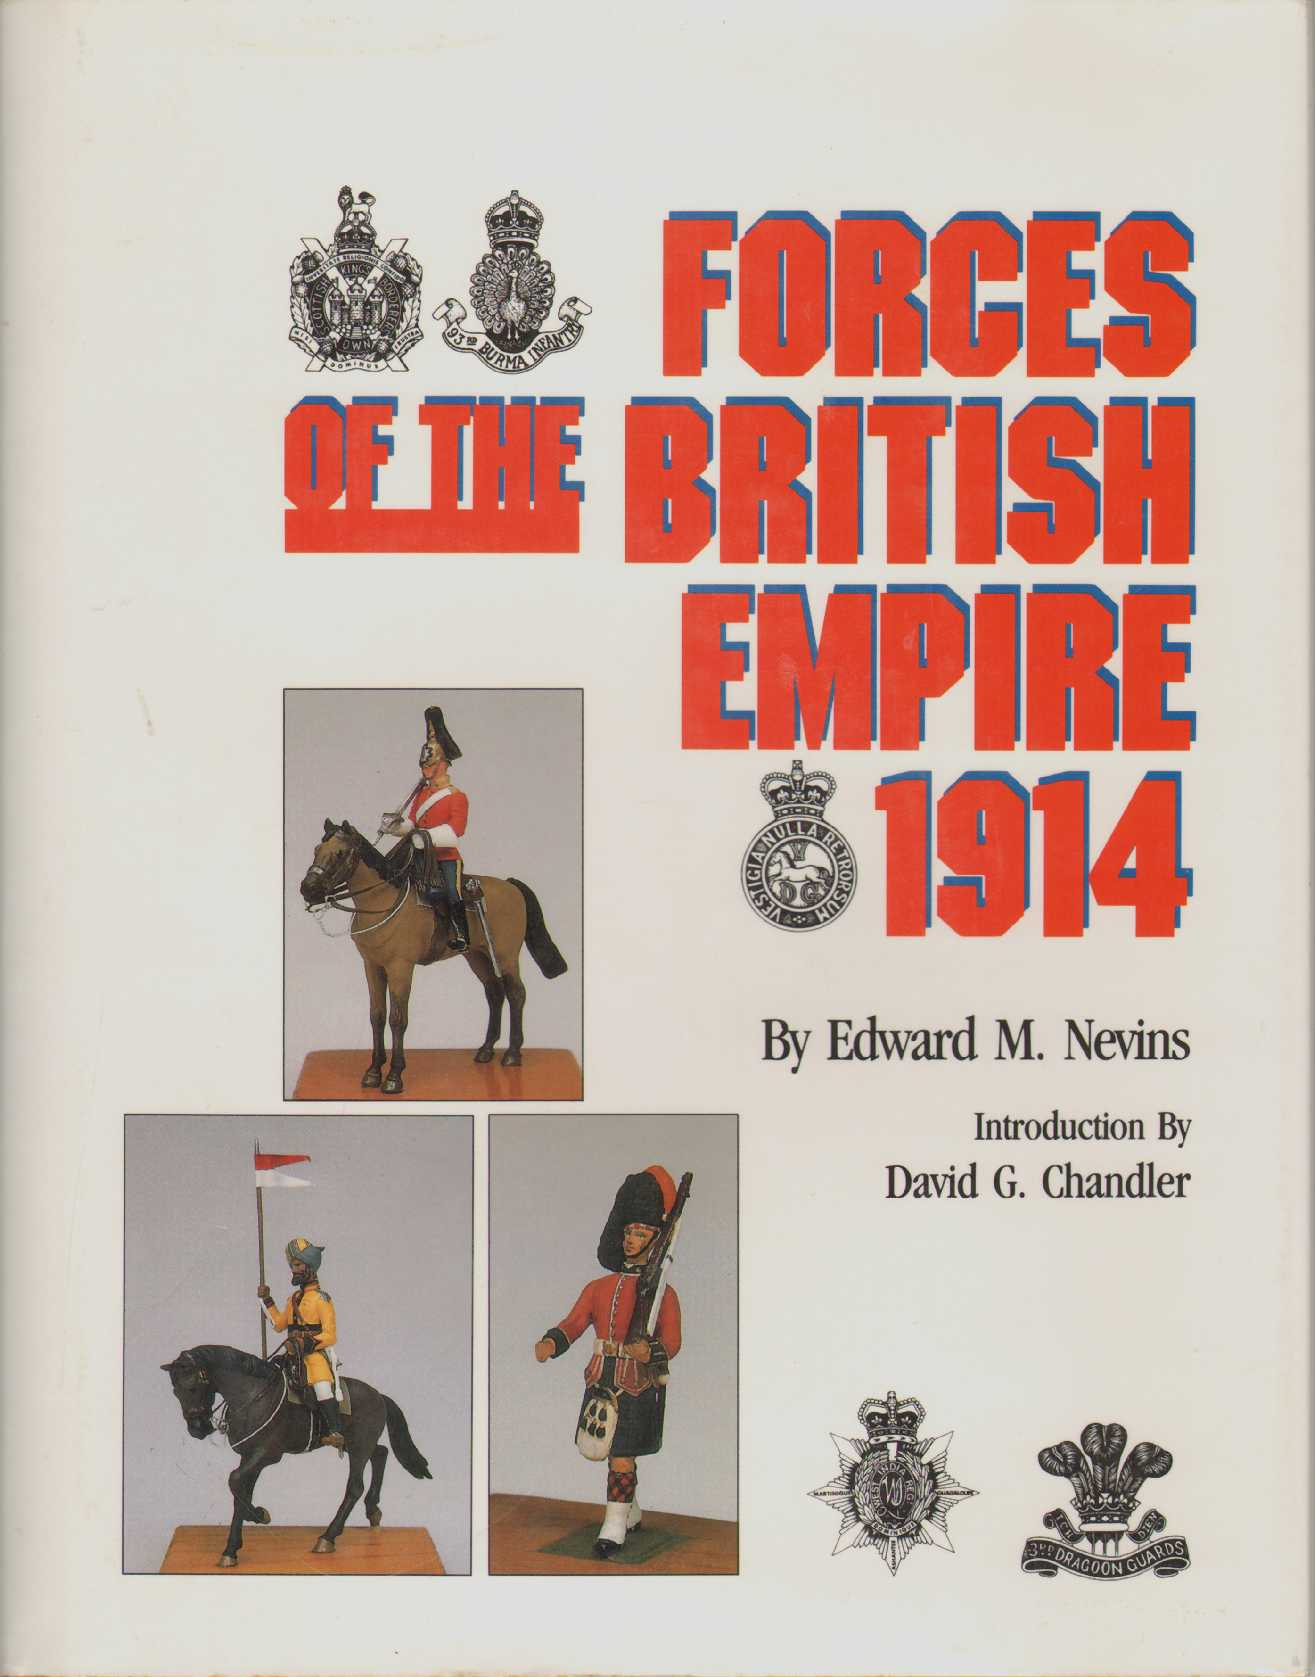 FORCES OF THE BRITISH EMPIRE, 1914, Nevins, Edward M. & David G. Chandler